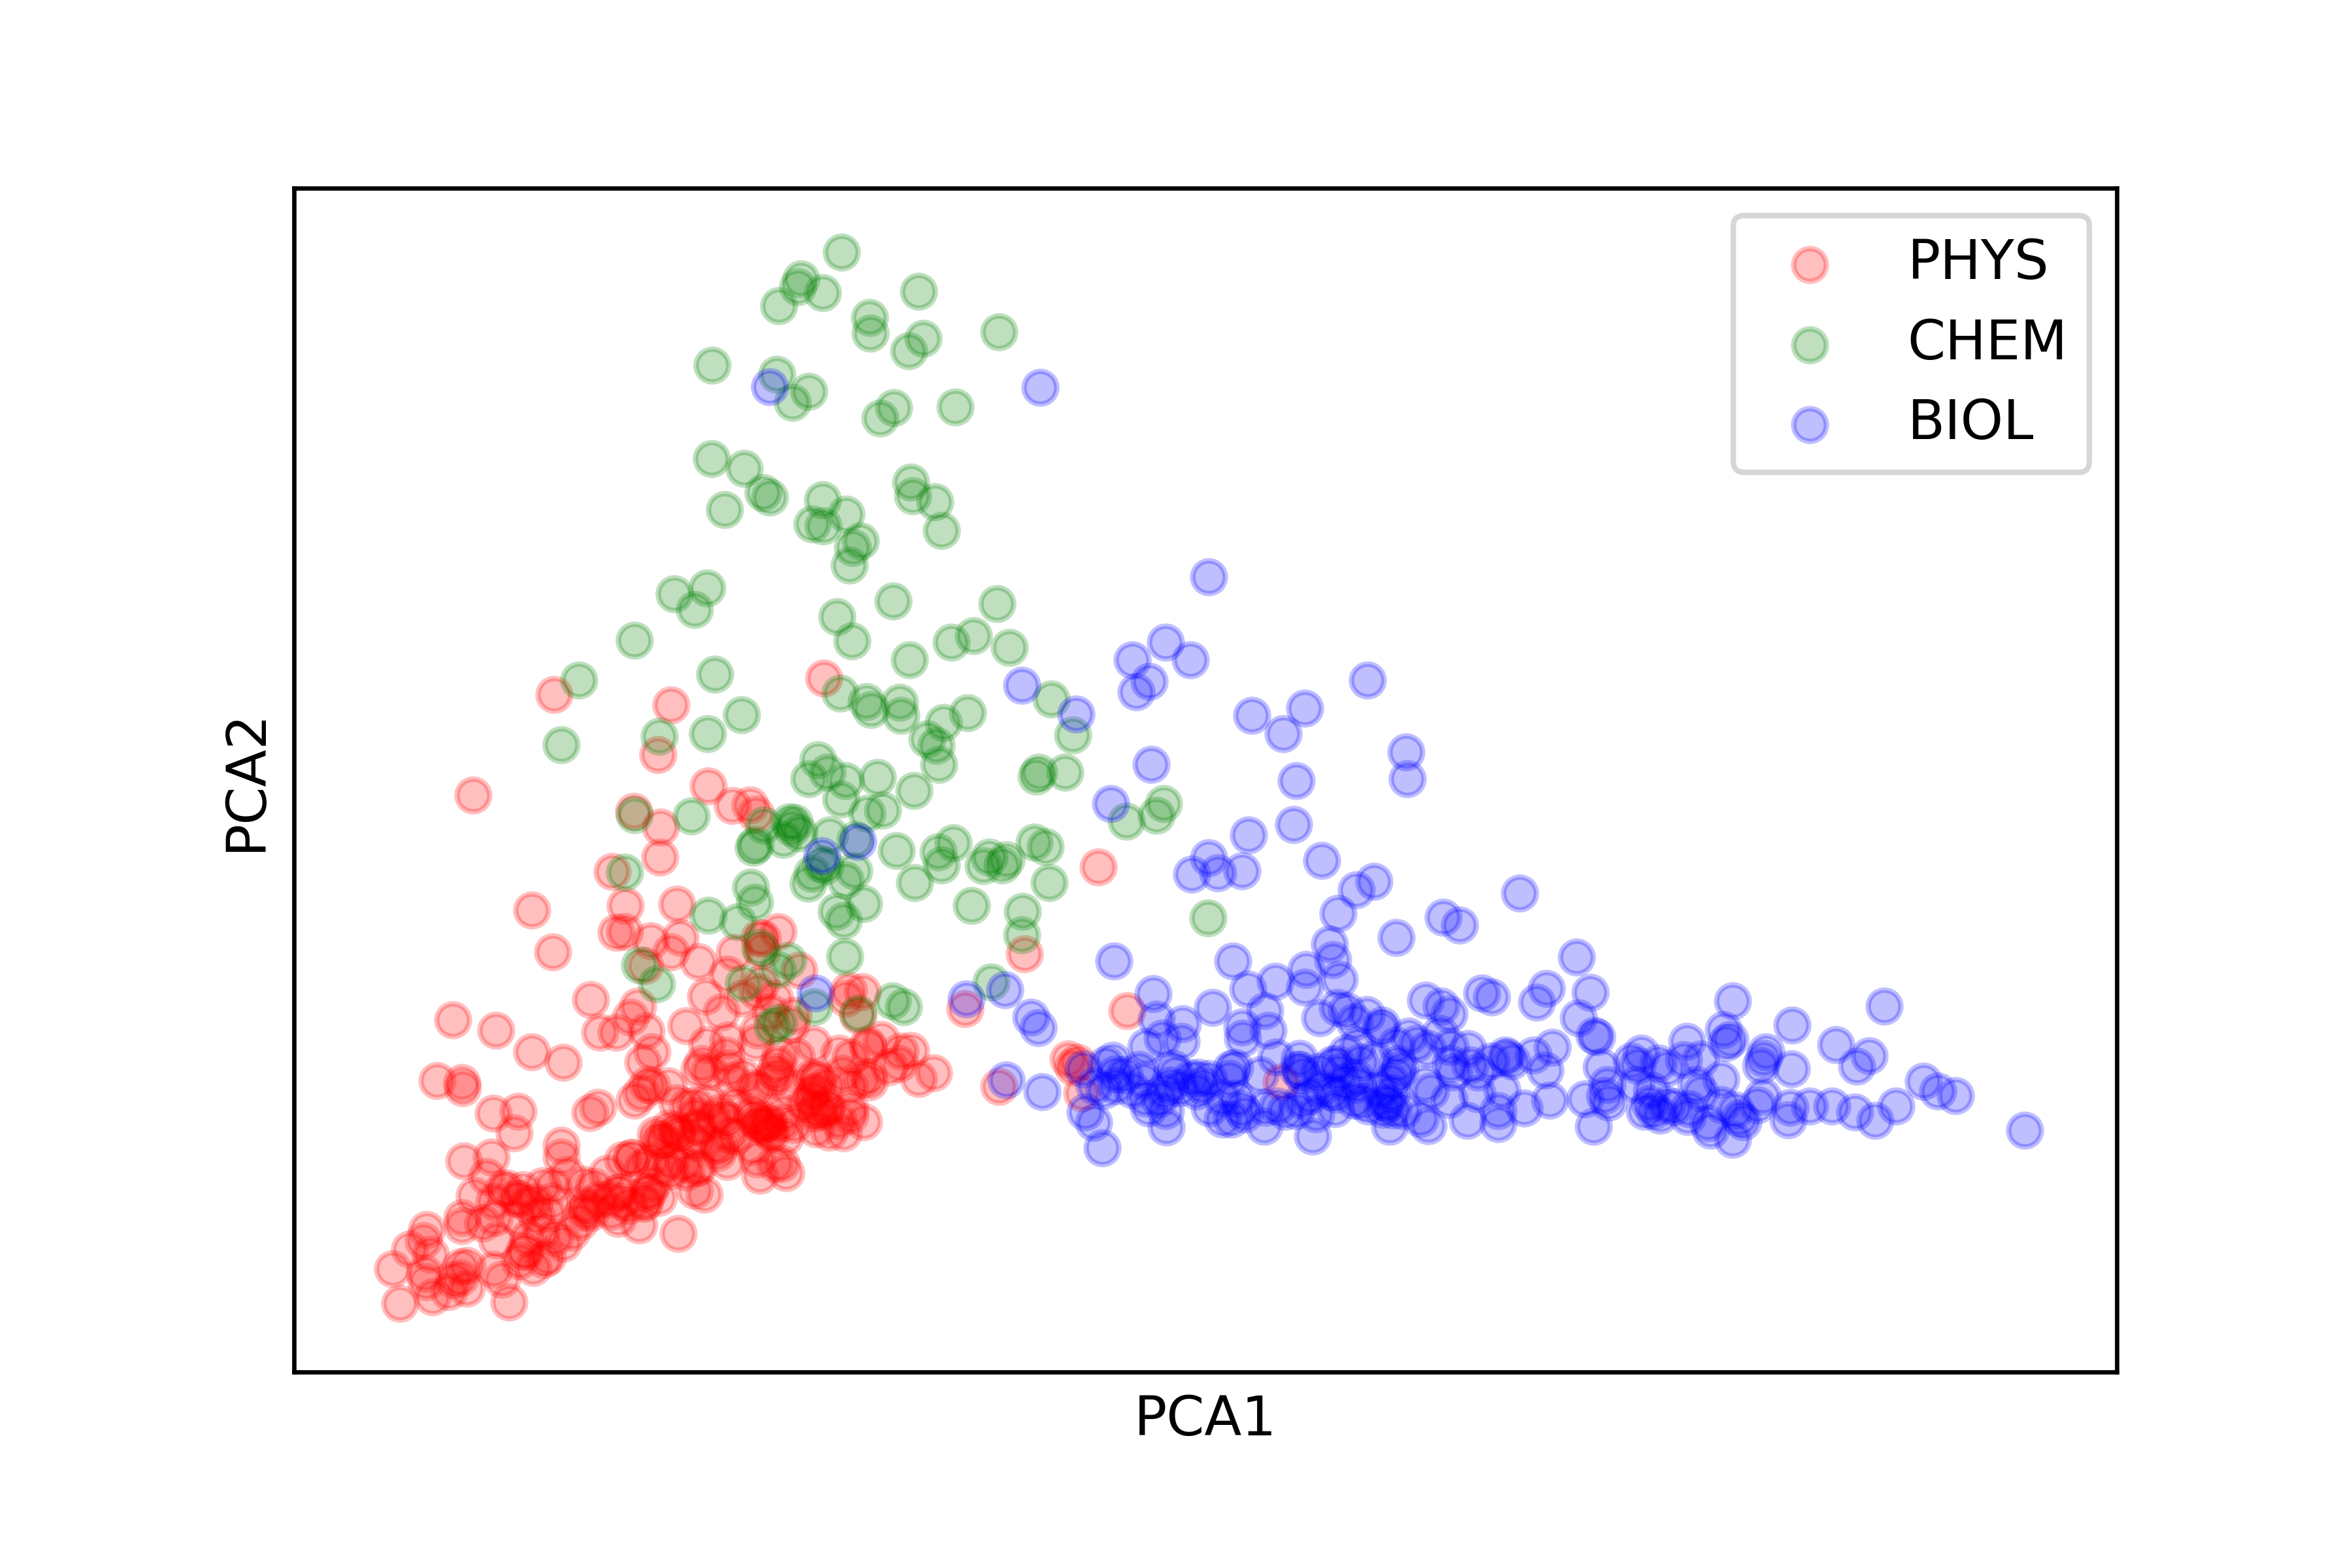 A scatter plot showing distribution of PHYS/CHEM/BIOL terms and their overlap.